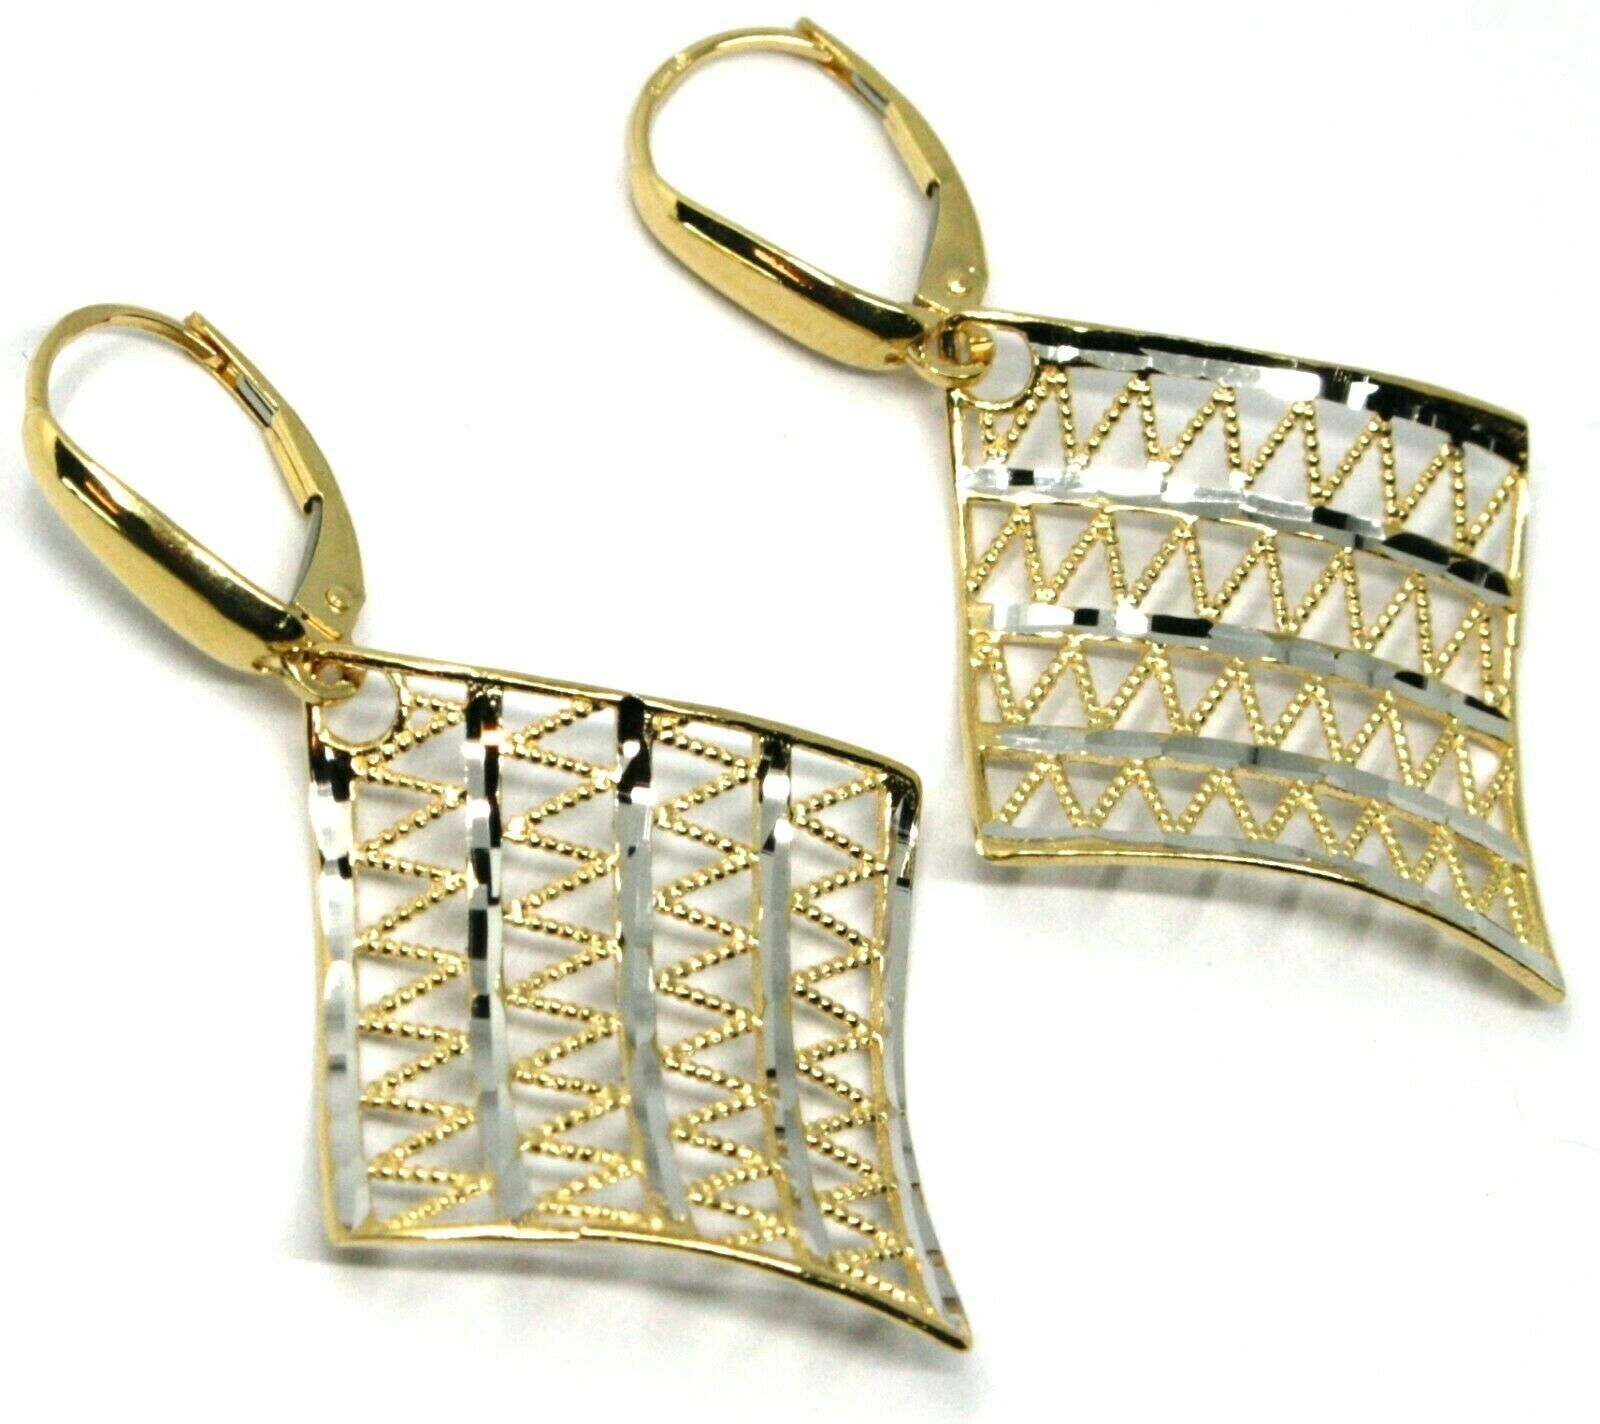 18K YELLOW WHITE GOLD PENDANT EARRINGS ONDULATE WORKED SQUARE, SHINY, STRIPED